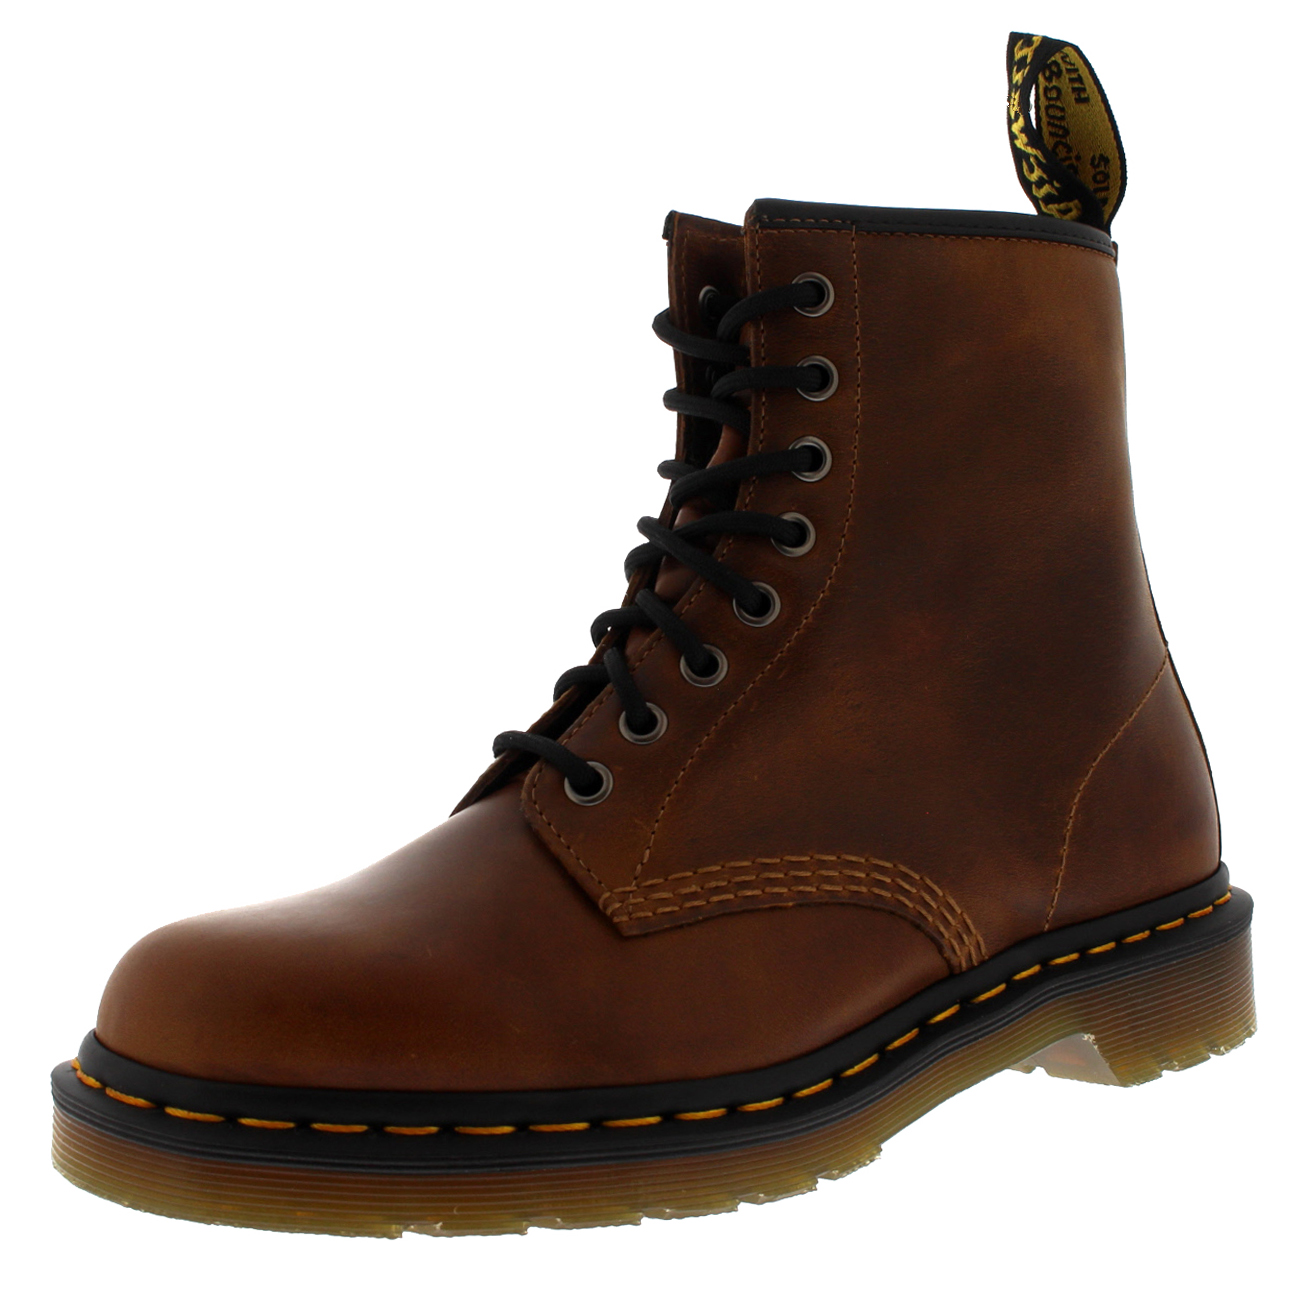 Dr Martens 1460 Classic Smooth